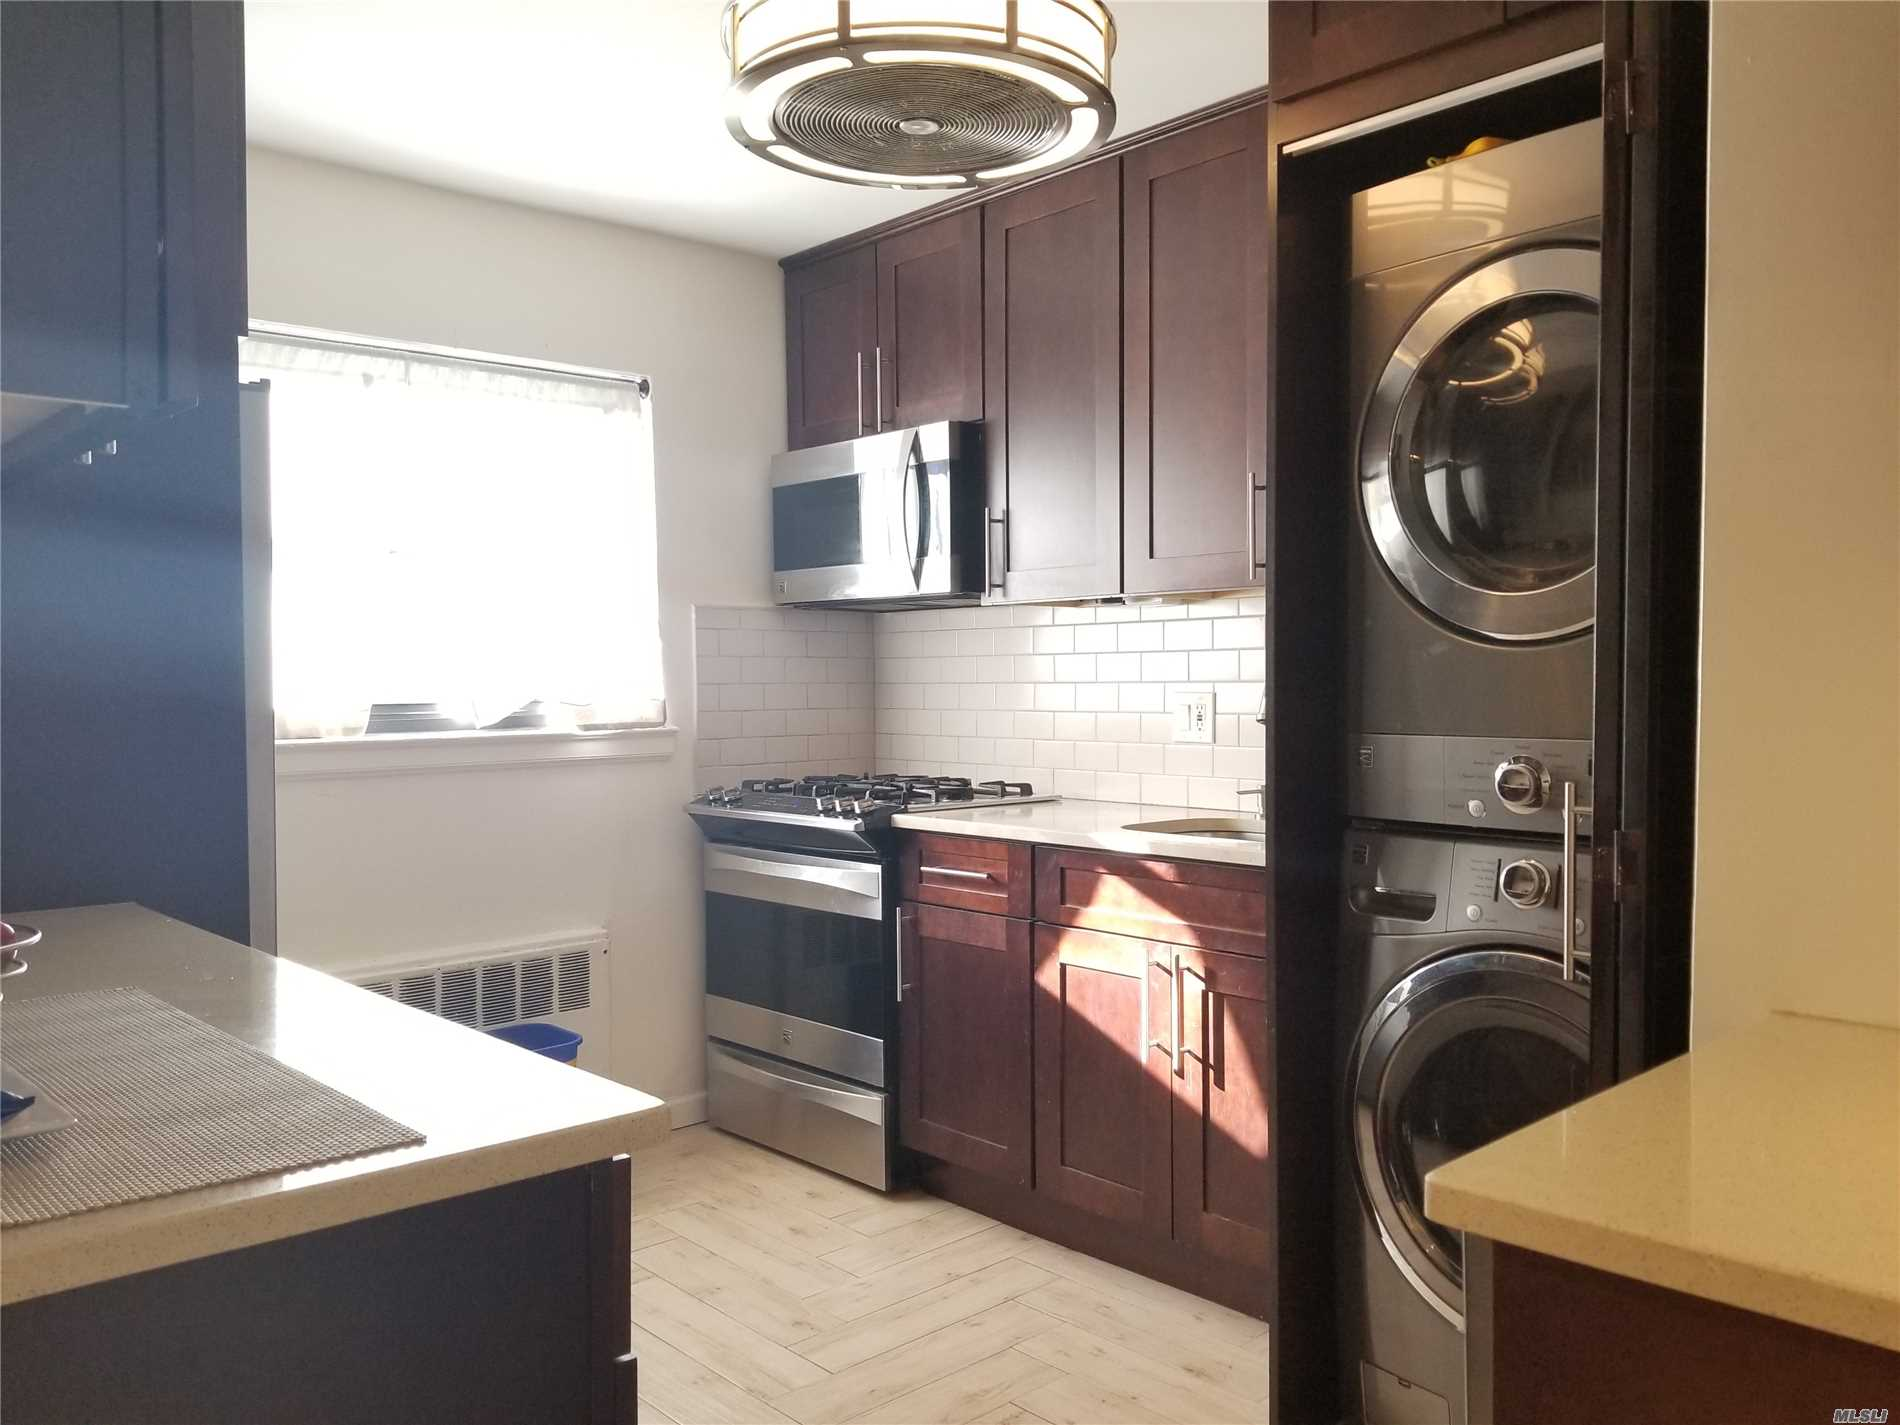 Largest Corner Unit On 2nd Fl., Newly Renovated Beautiful Kitchen, Mint Condition, Electricity Upgraded To 220 Amp, Windsor Oaks Is Self-Managed,  Professional Landscaped, Free 2 Spots Parking, Garages For Rent At $150, Very Well Known Alley Pond Park And Cunningham Park Surrounded. 4 Ceiling Fans & lighting, brand new storm door & windows, Sd#26, Pet Friendly, 100% Equity Coop, Bus Qm5, Qm8, Q88, Q27, Sublet Possible, No flip tax, across street Alley pond park, this is A must see!